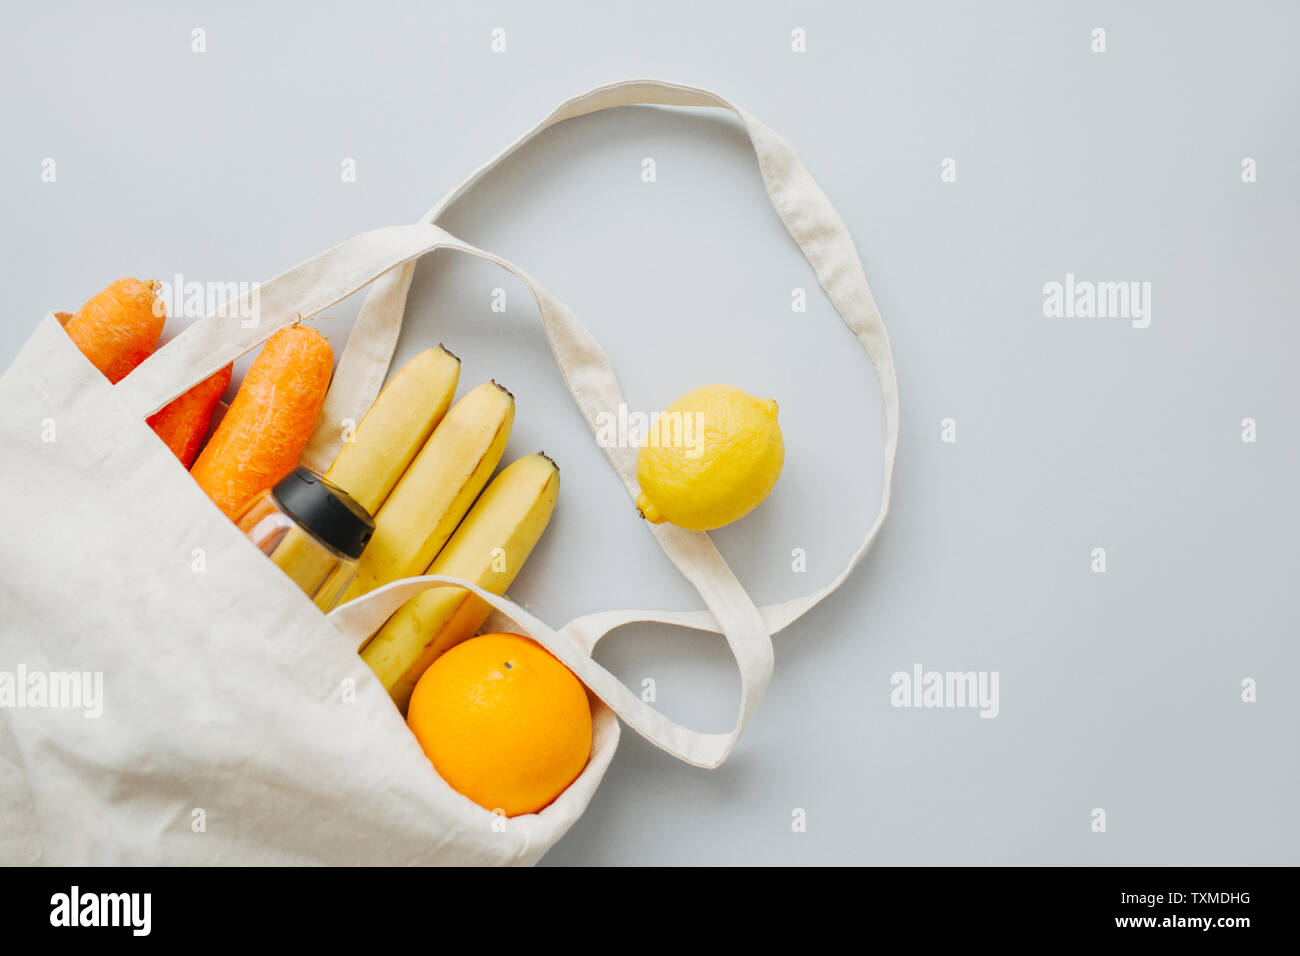 Fresh organic fruit and vegetables in a linen bag on a light grey background. Eco lifestyle, zero waste concept. No plastic living. - Stock Image